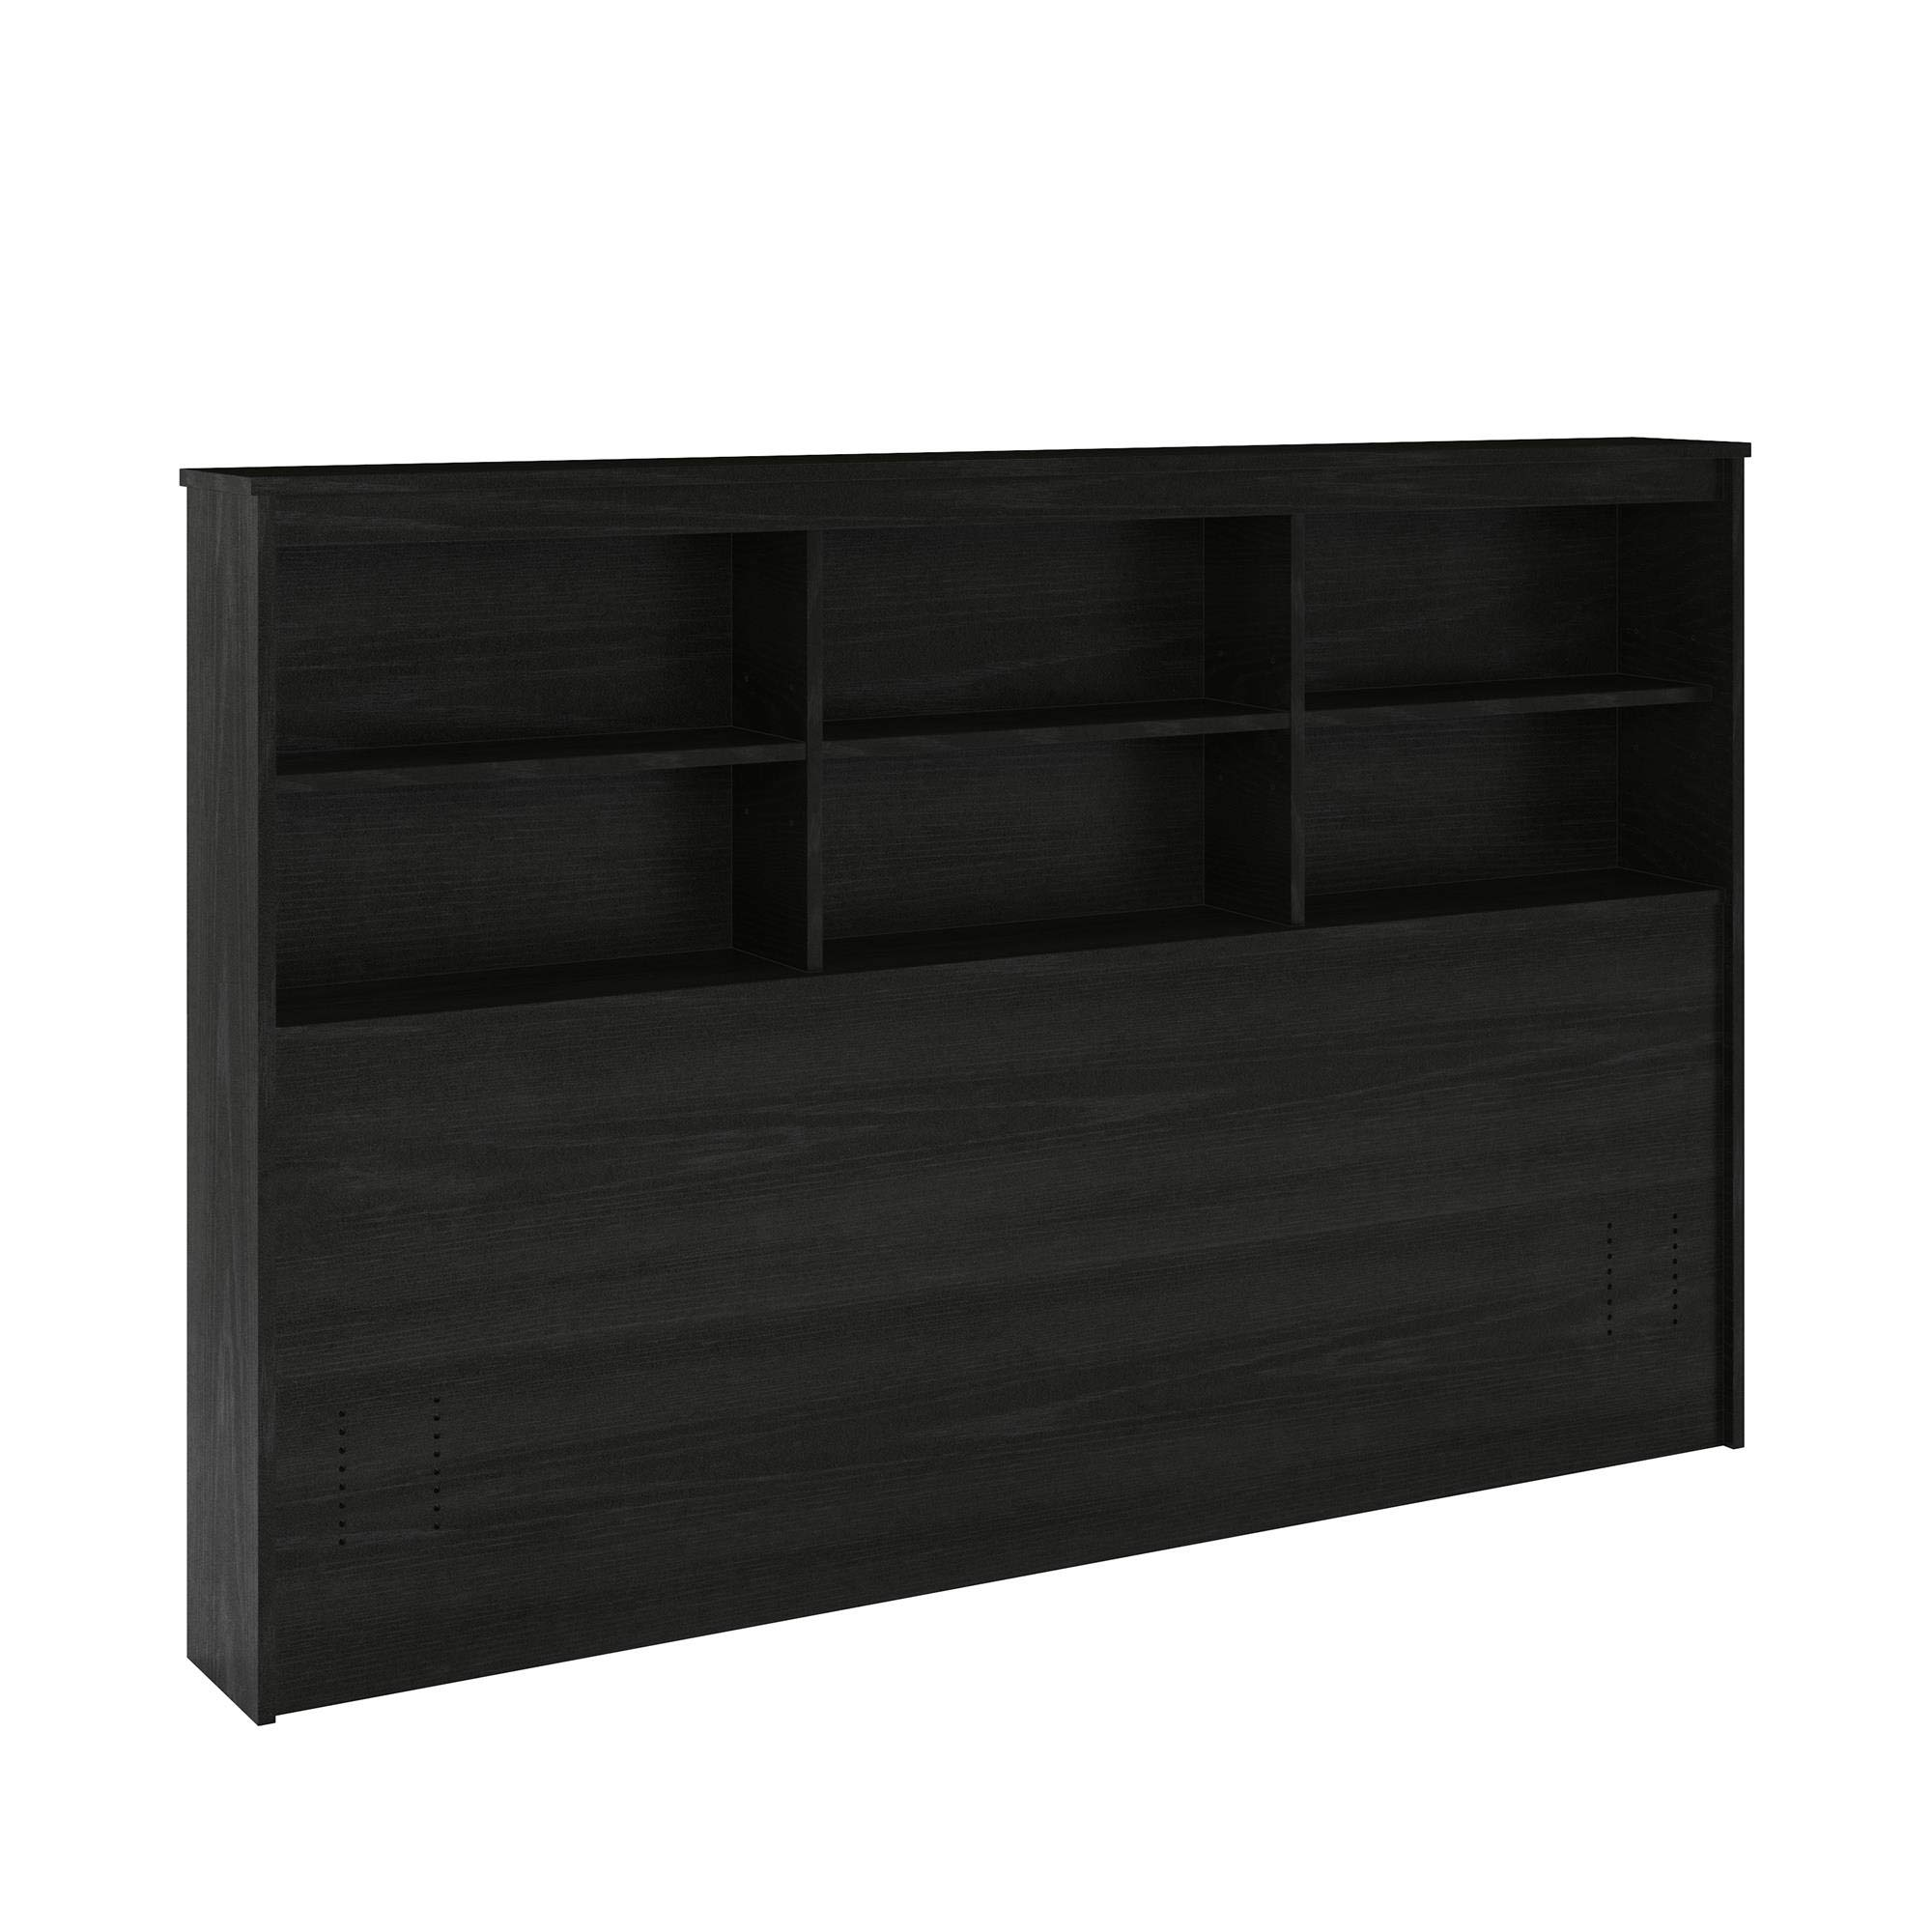 REALROOMS Lacey Full/Queen Storage Headboard, Black Oak by REALROOMS